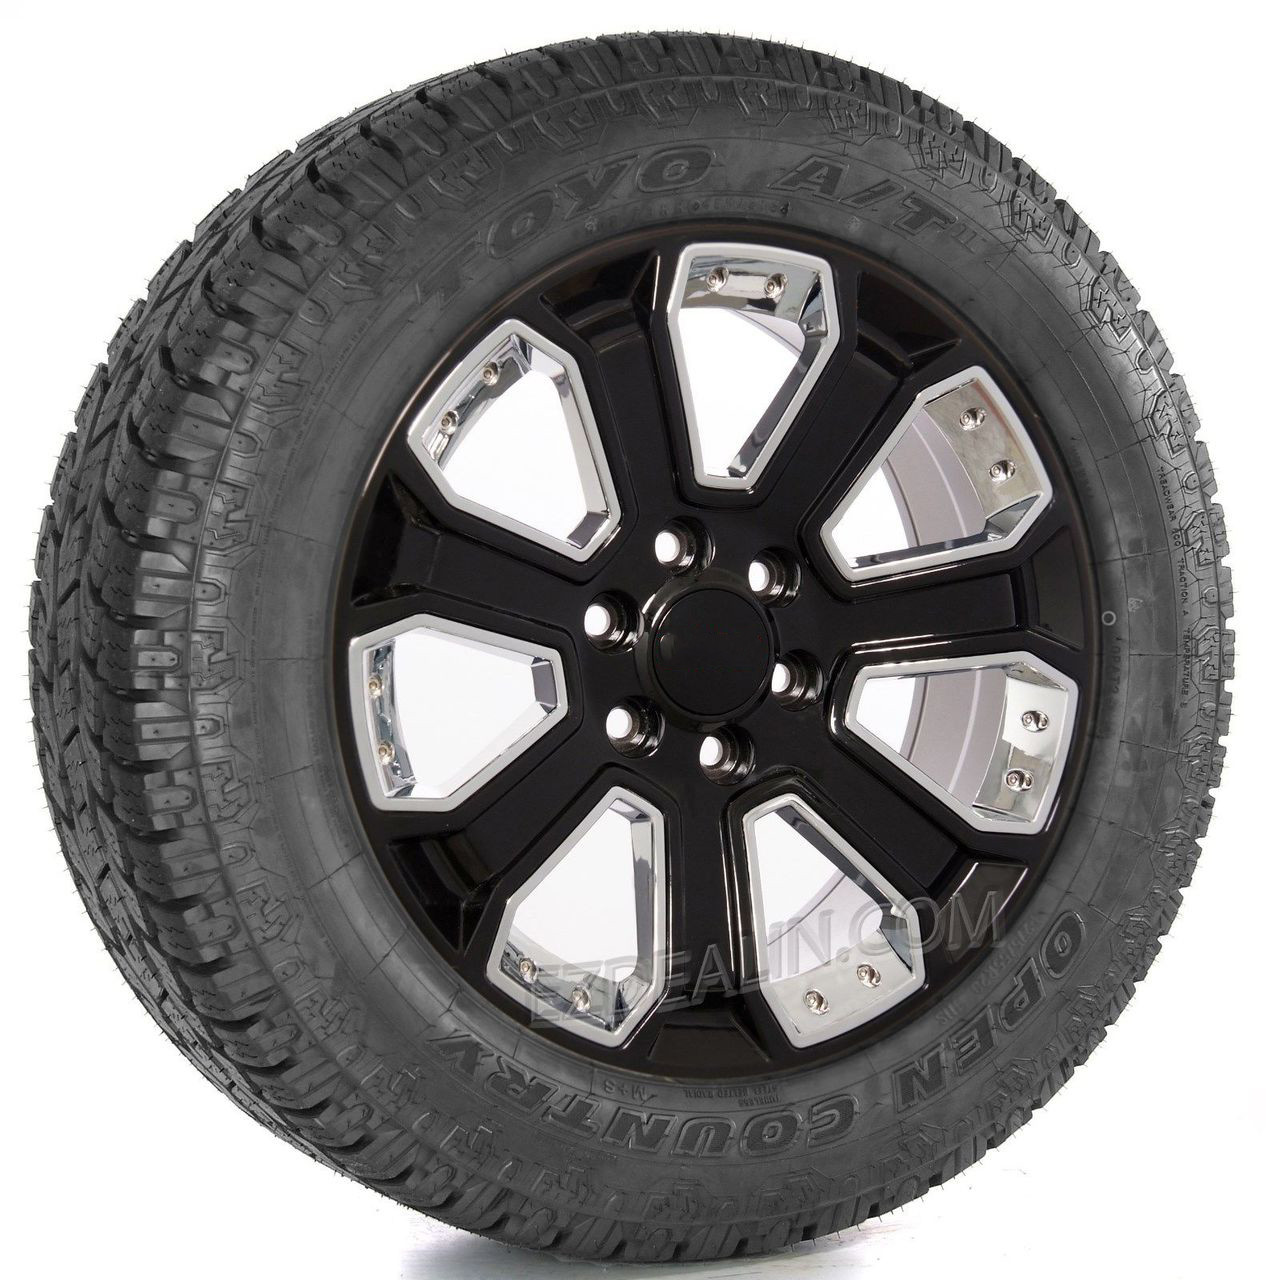 """Gloss Black 20"""" With Chrome Inserts Wheels with Toyo A/T Tires for GMC Sierra, Yukon, Denali - New Set of 4"""